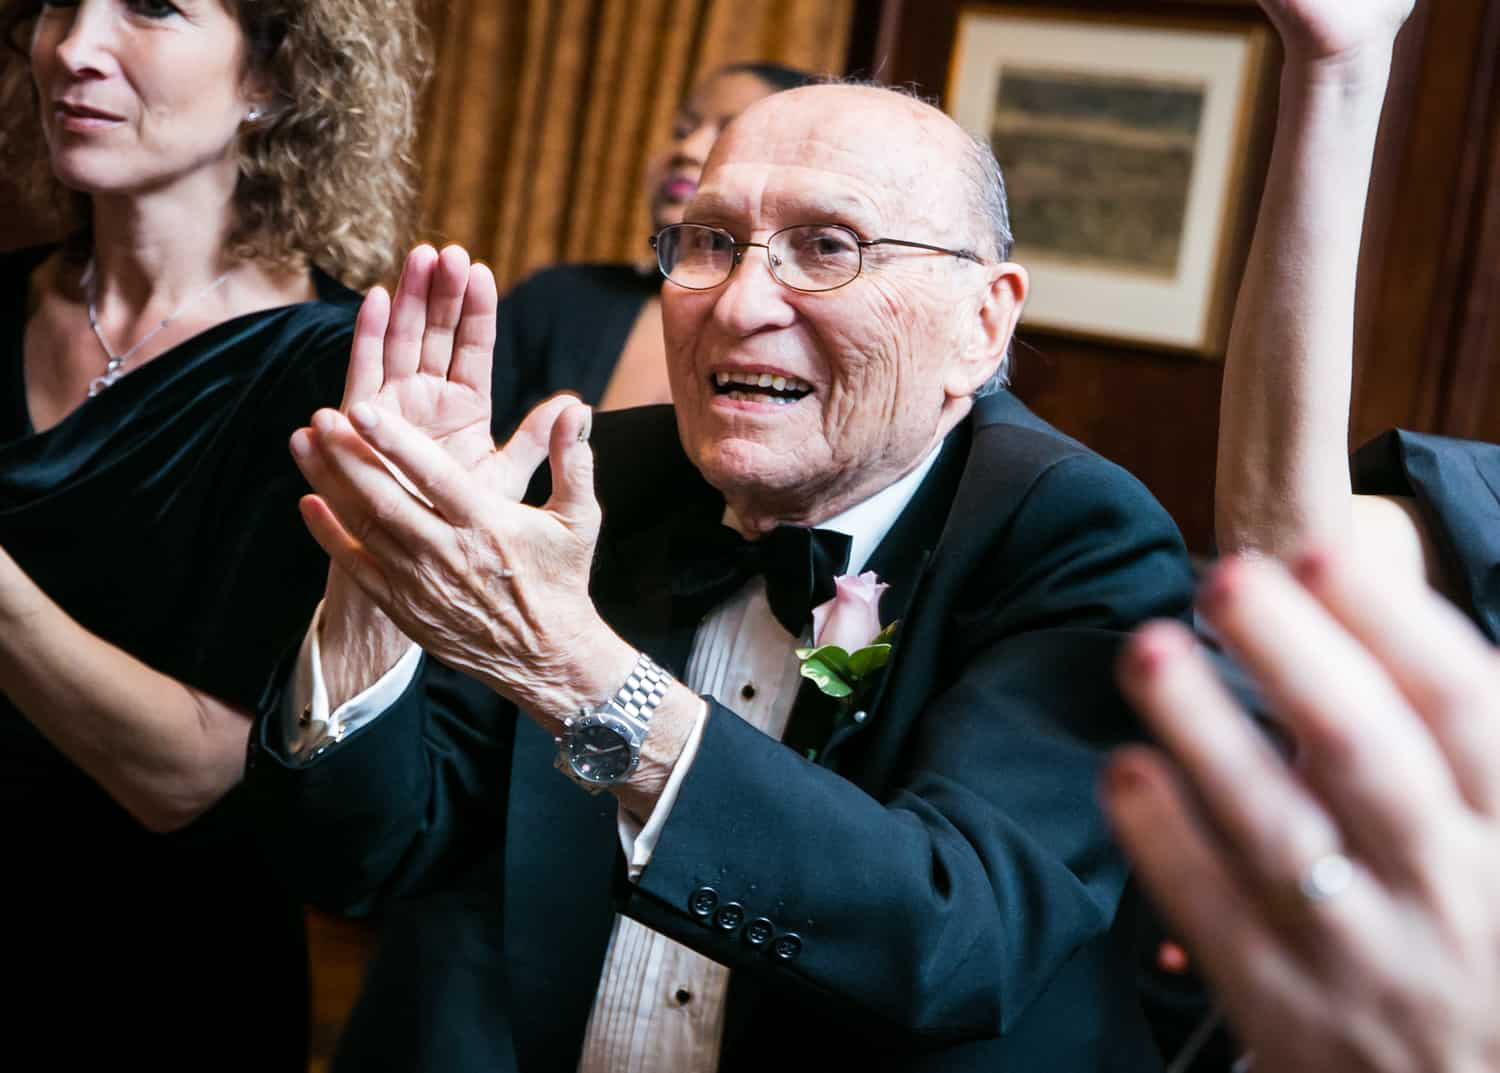 Older man clapping at Harvard Club wedding reception